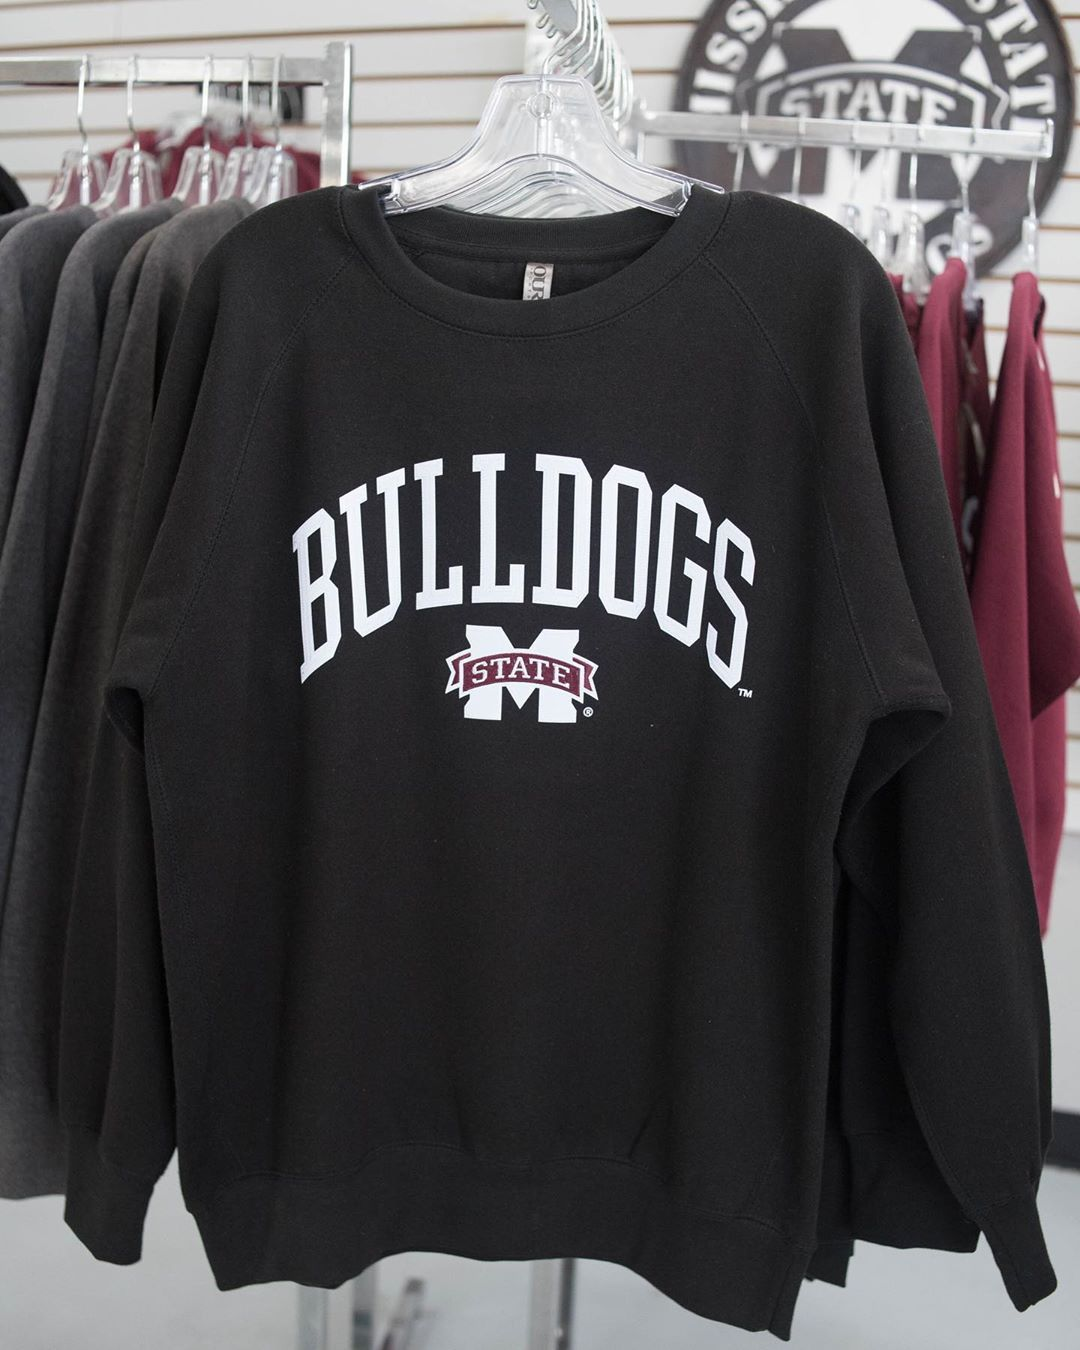 Campus Bookstore Starkville On Instagram Get Ready For Fall With A Cozy Sweatshirt Or Hoodie From Campus Bookstore L Cozy Sweatshirts Msu Outfit Sweatshirts [ 1350 x 1080 Pixel ]